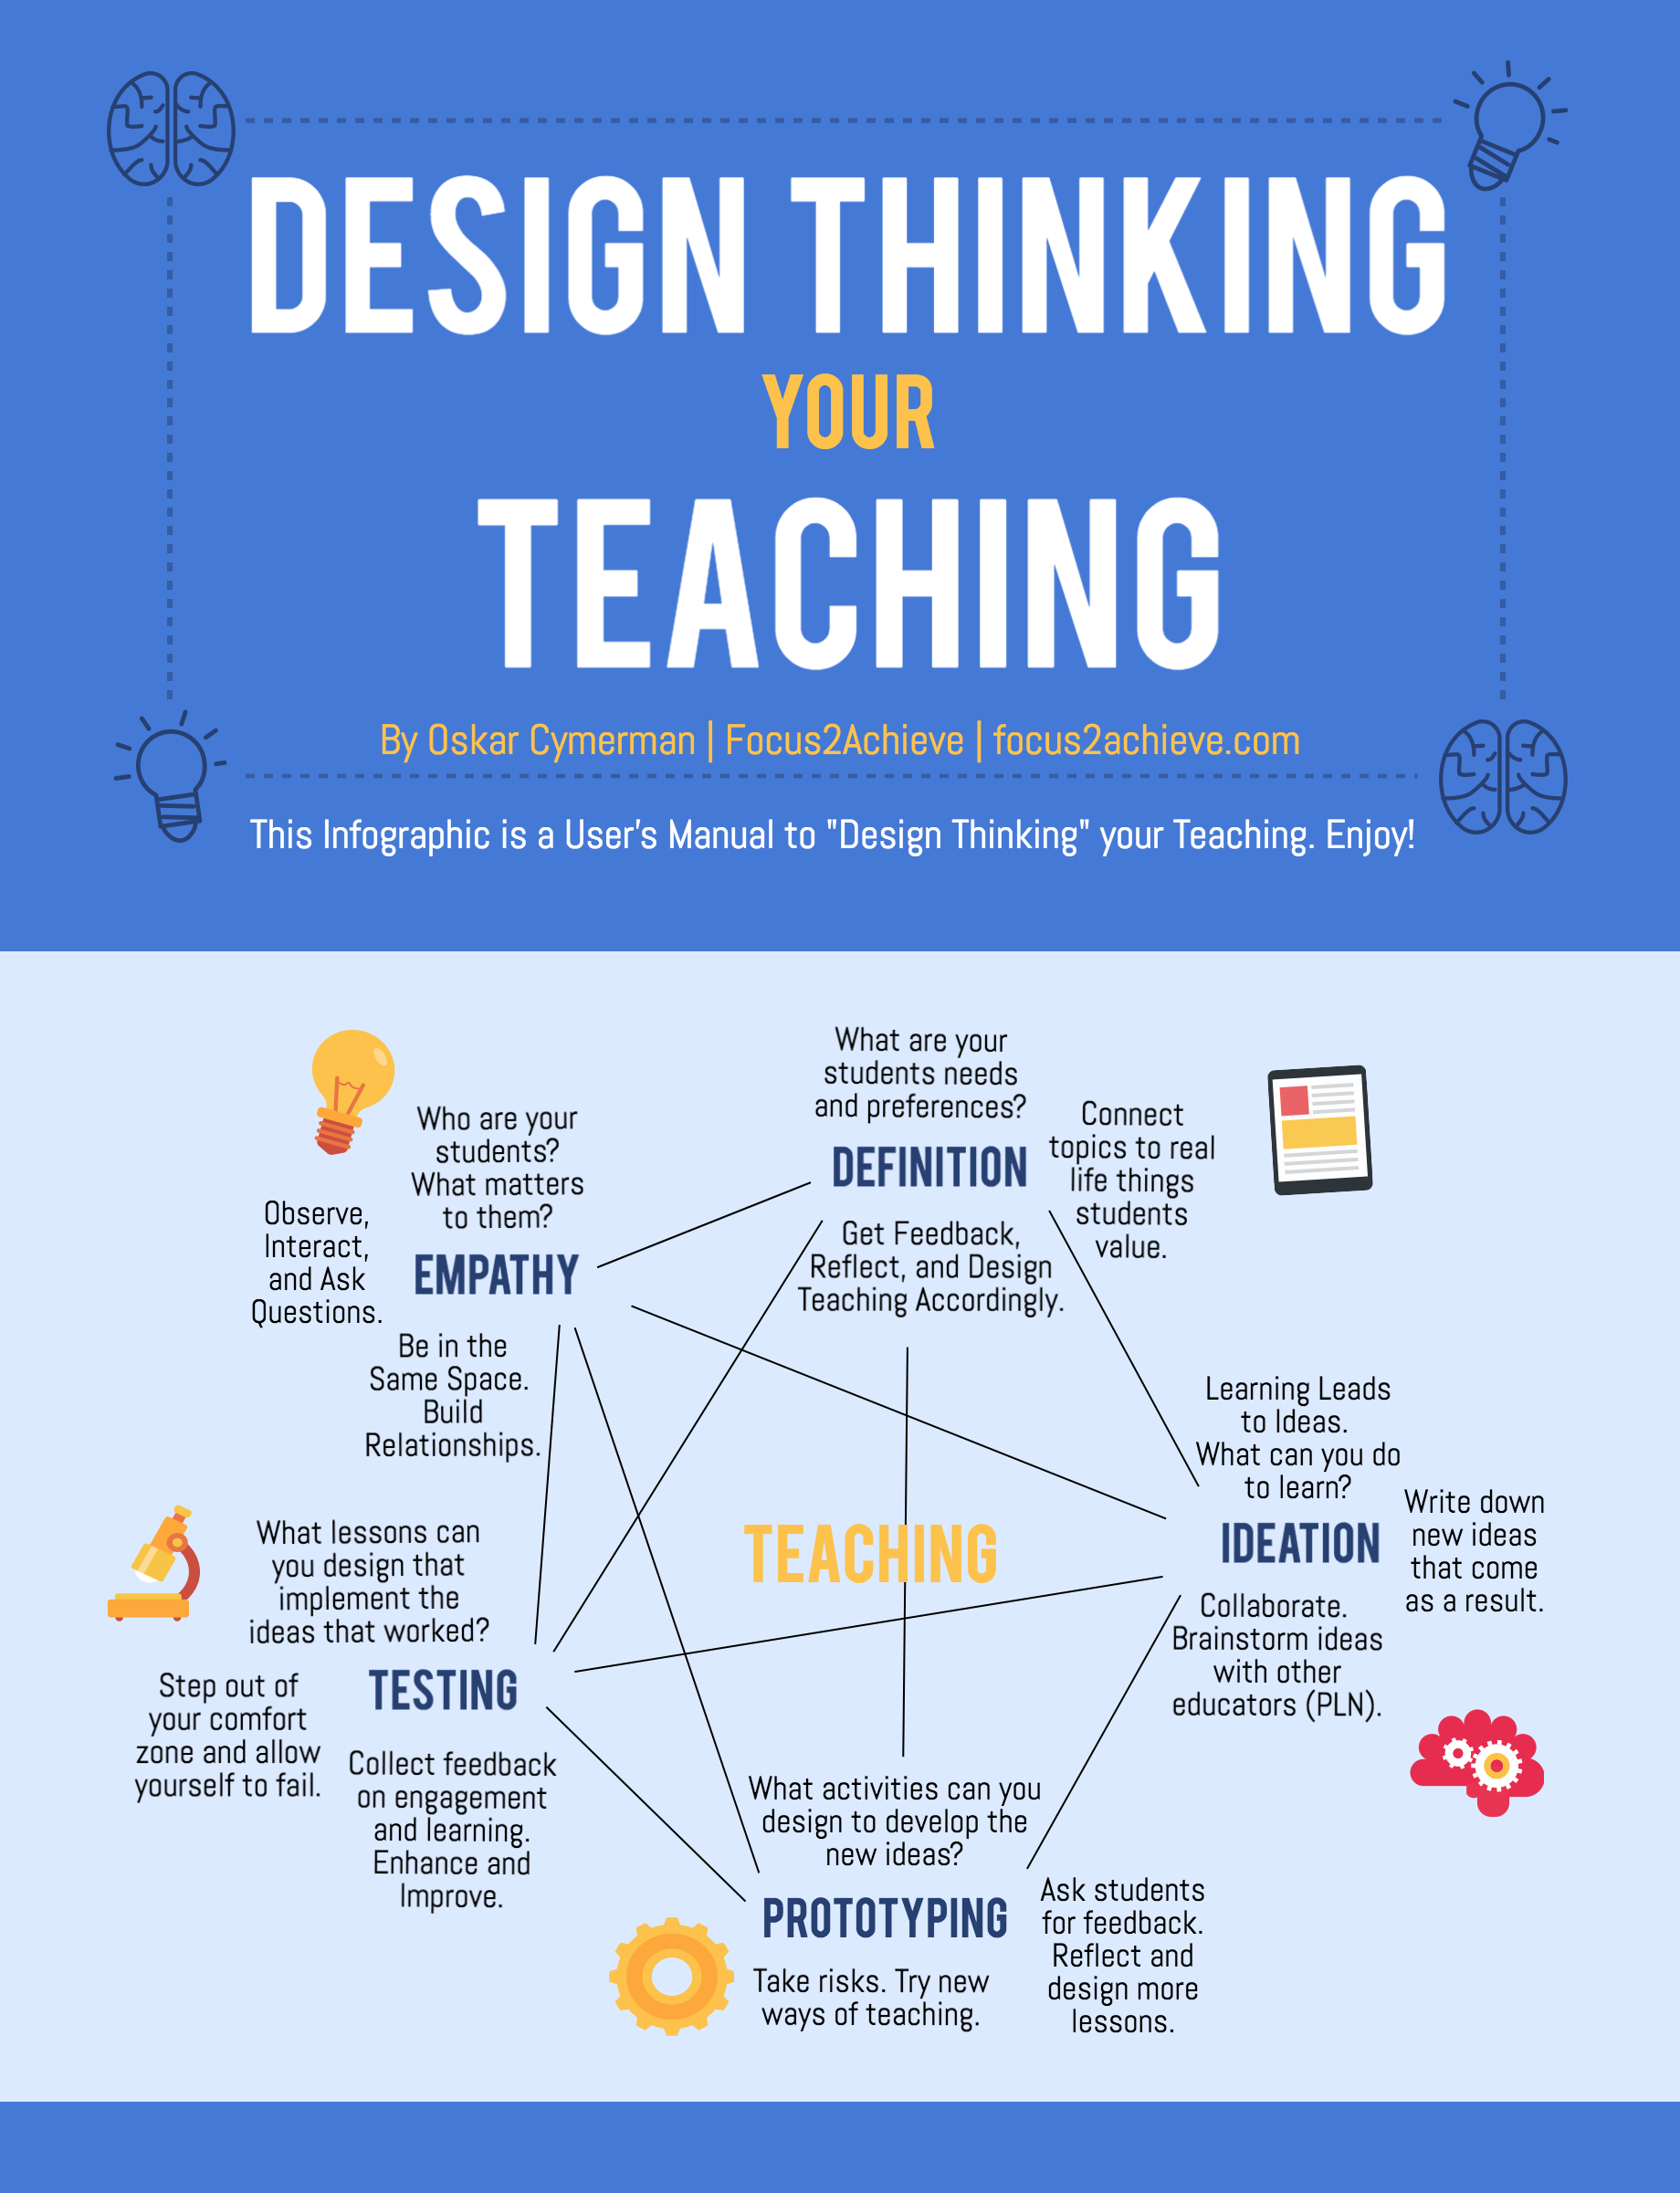 Design Thinking Your Teaching